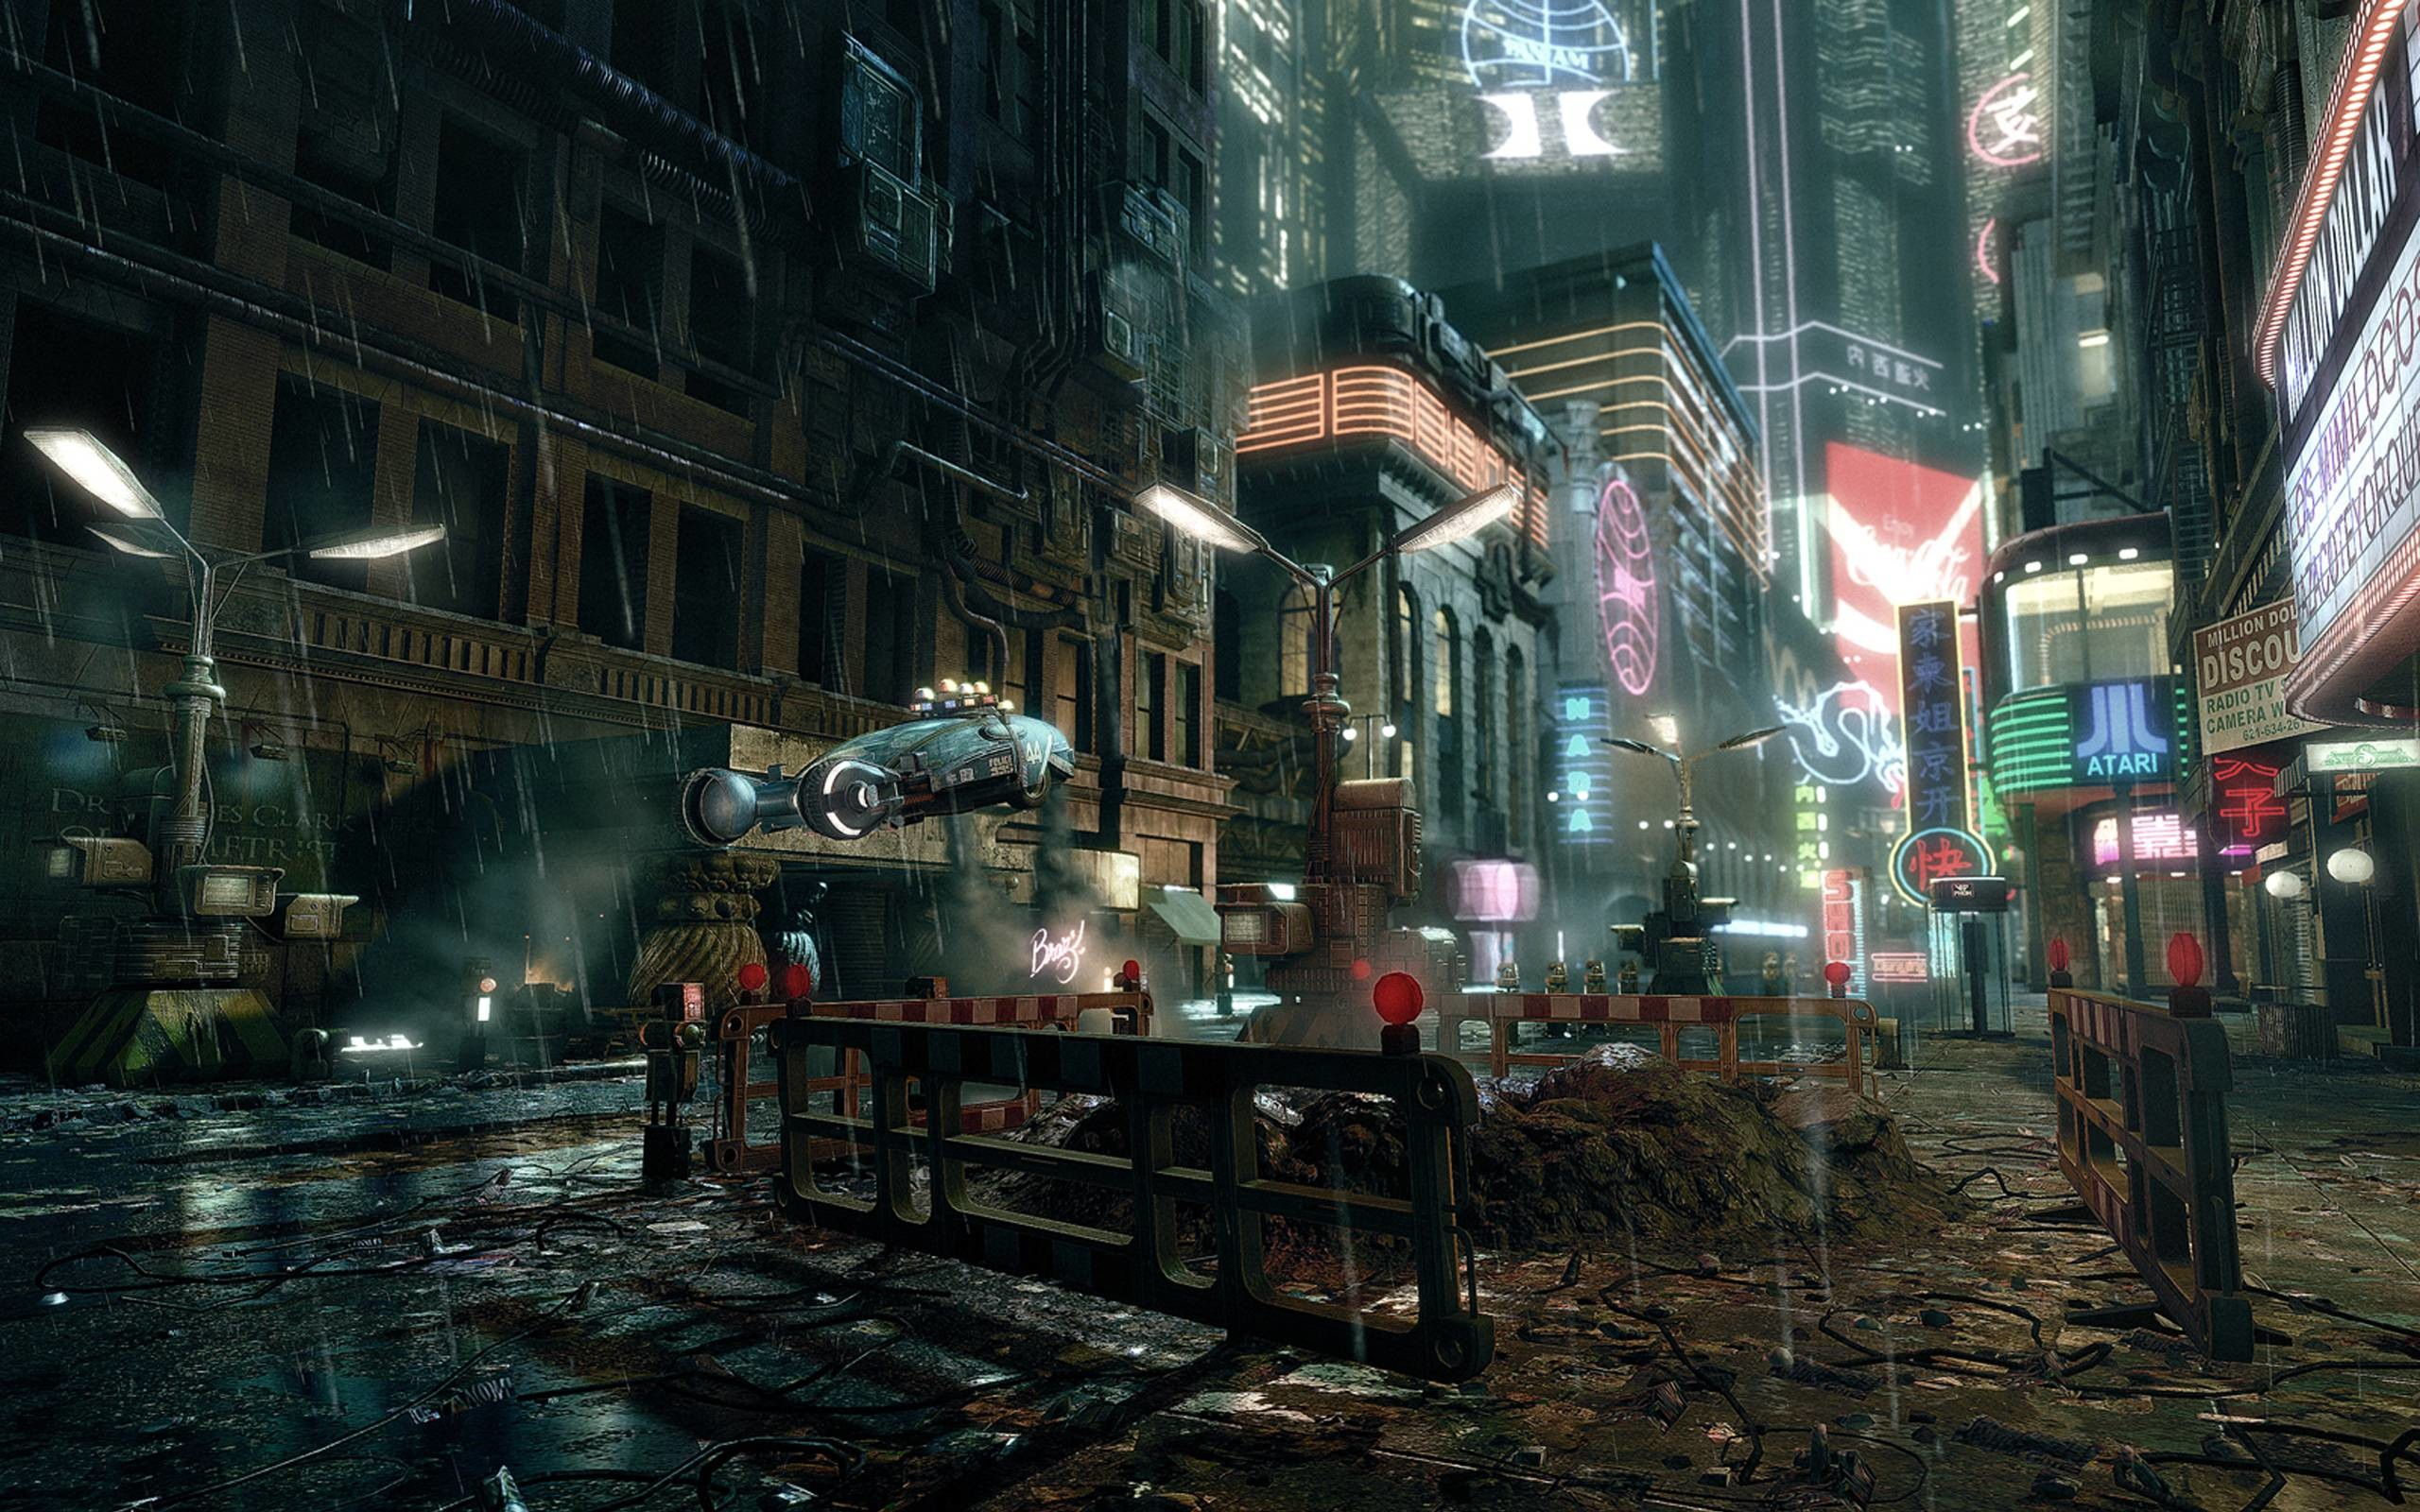 2560x1600 Wallpapers For > Futuristic City Wallpaper